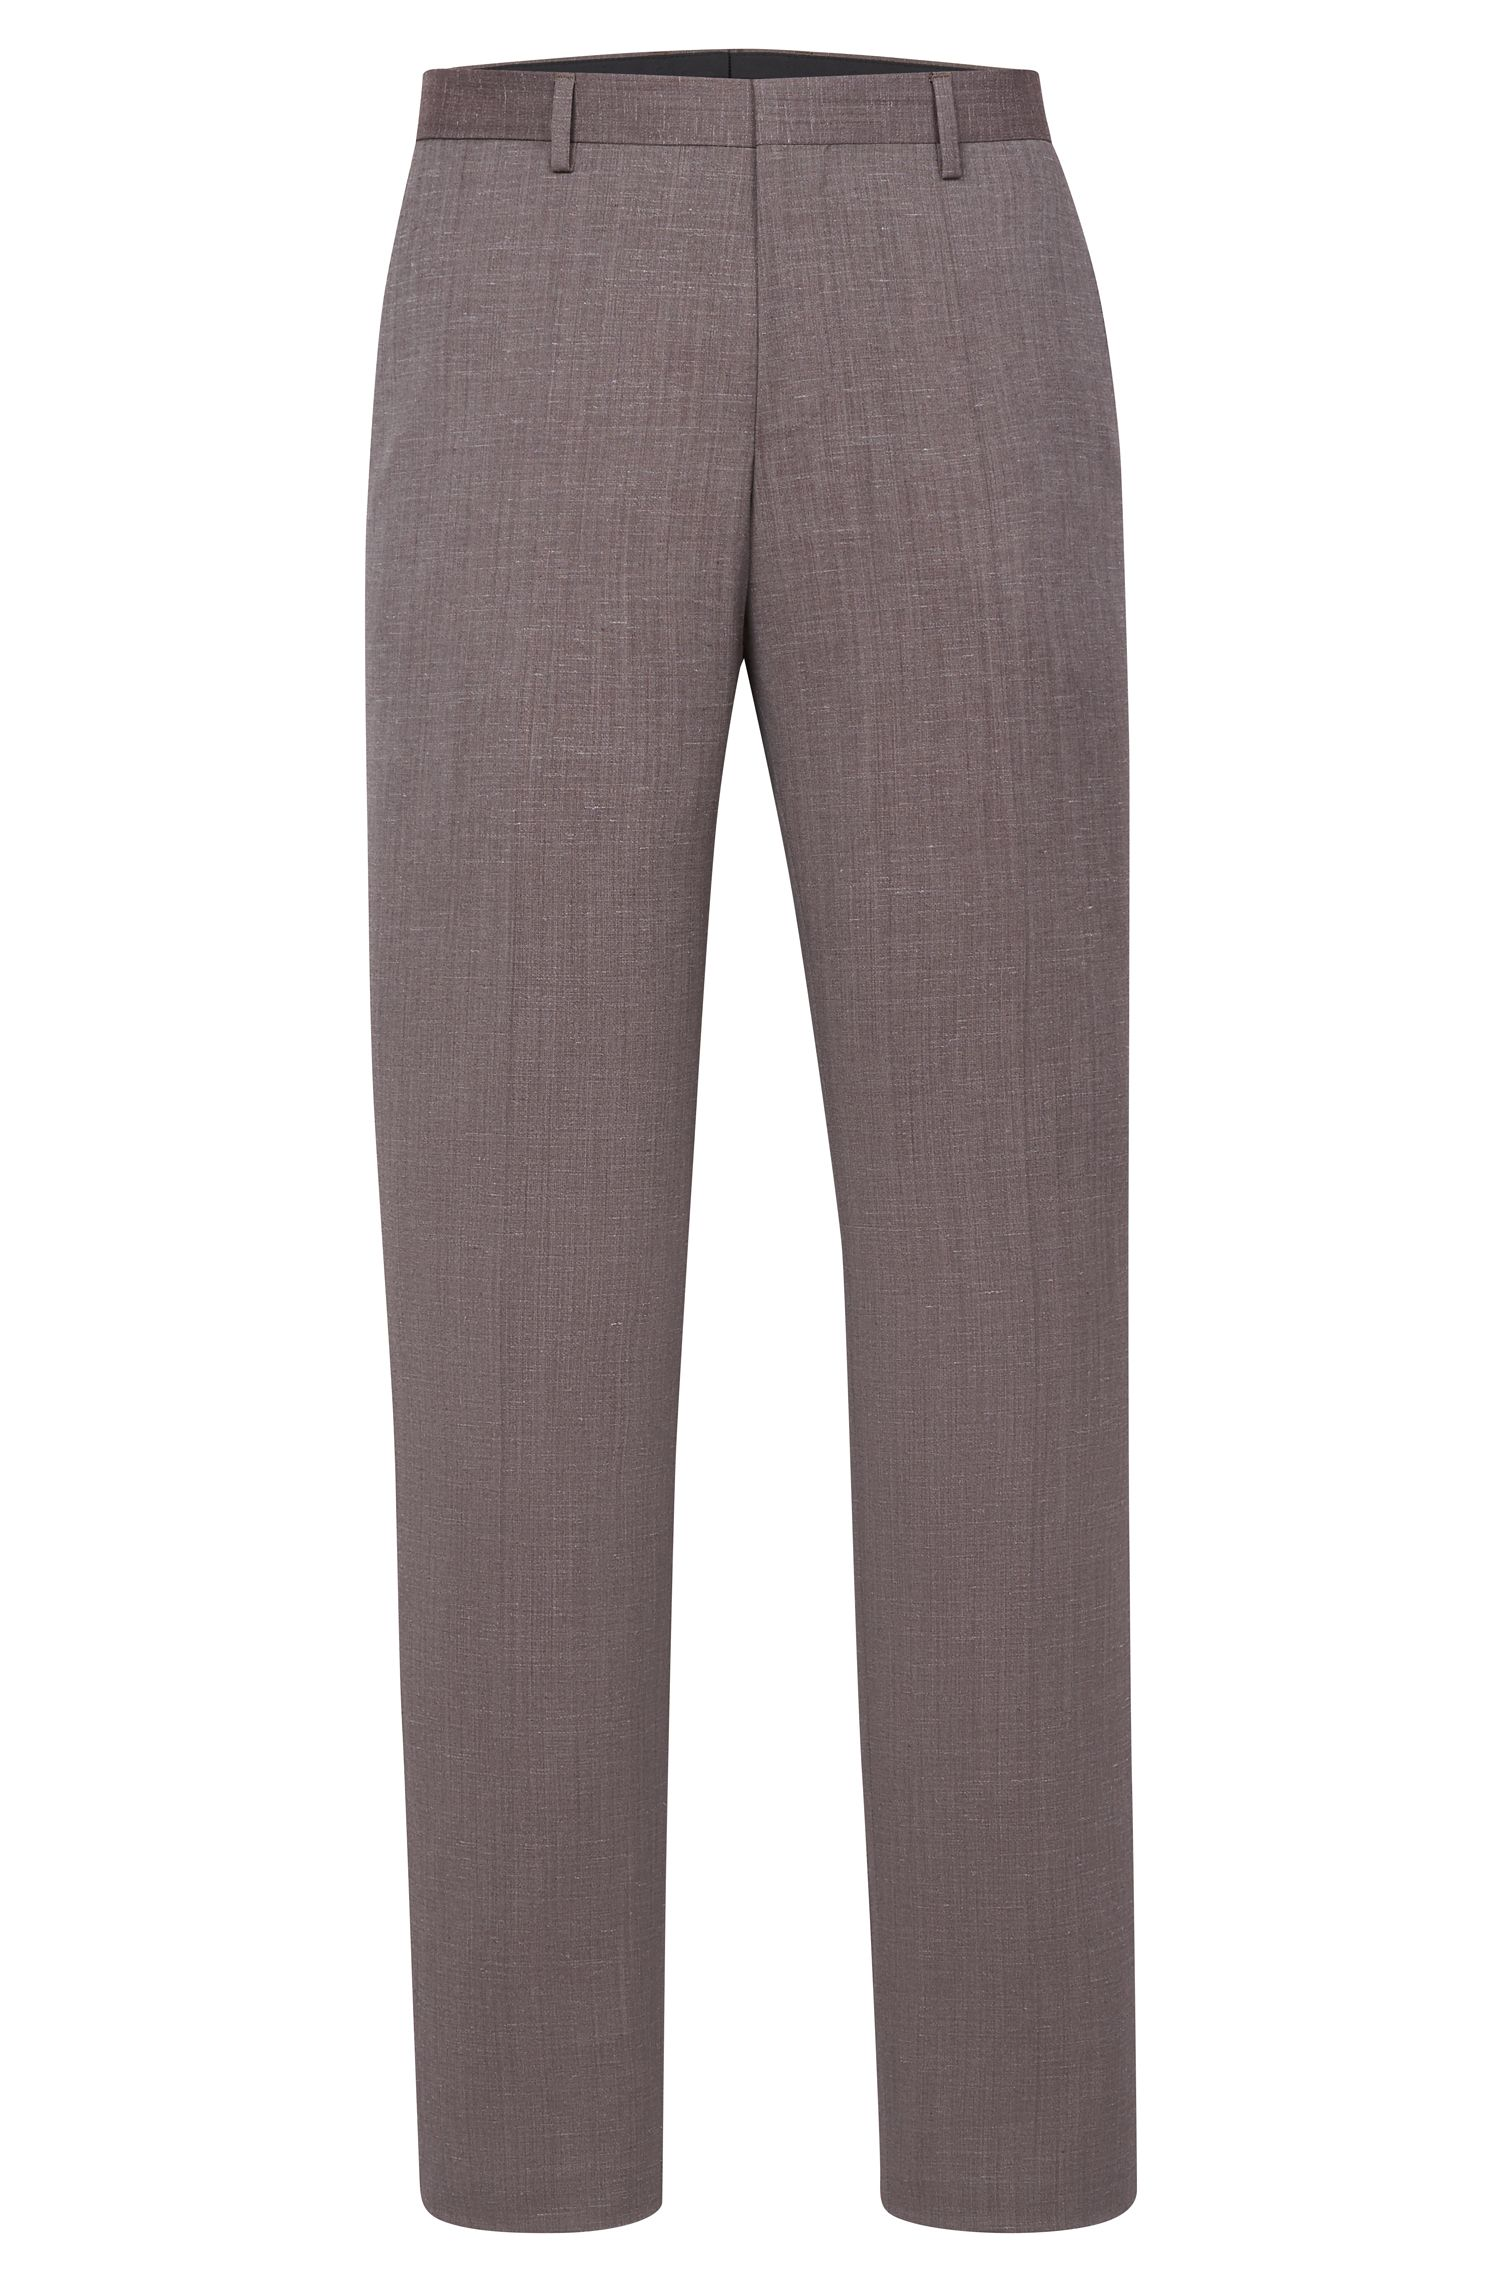 'Benso' | Slim Fit, Super 100 Virgin Wool Dress Pants